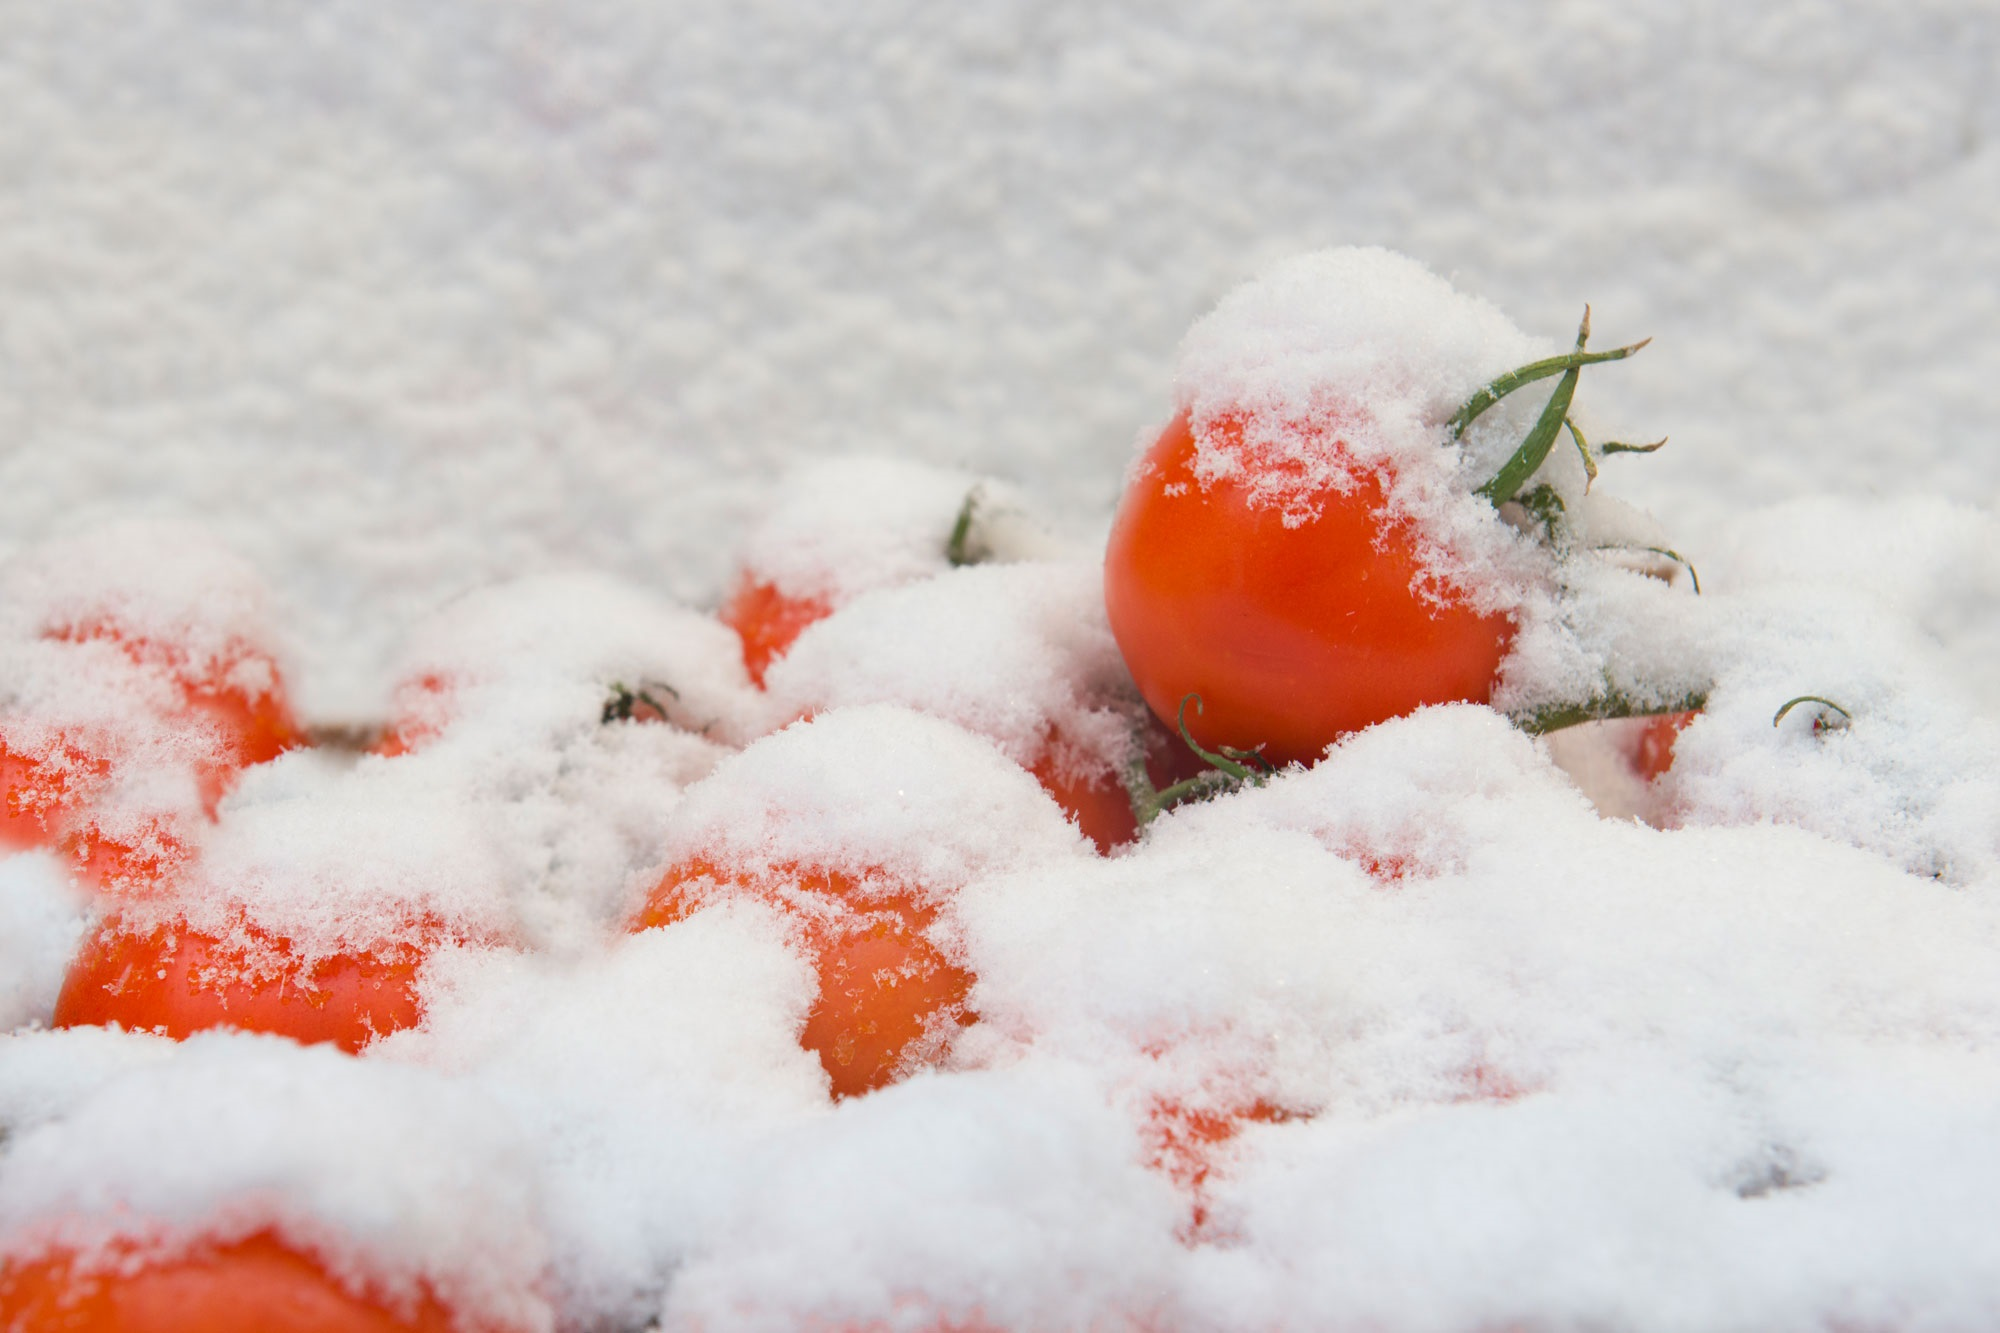 frozen tomatoes in snow